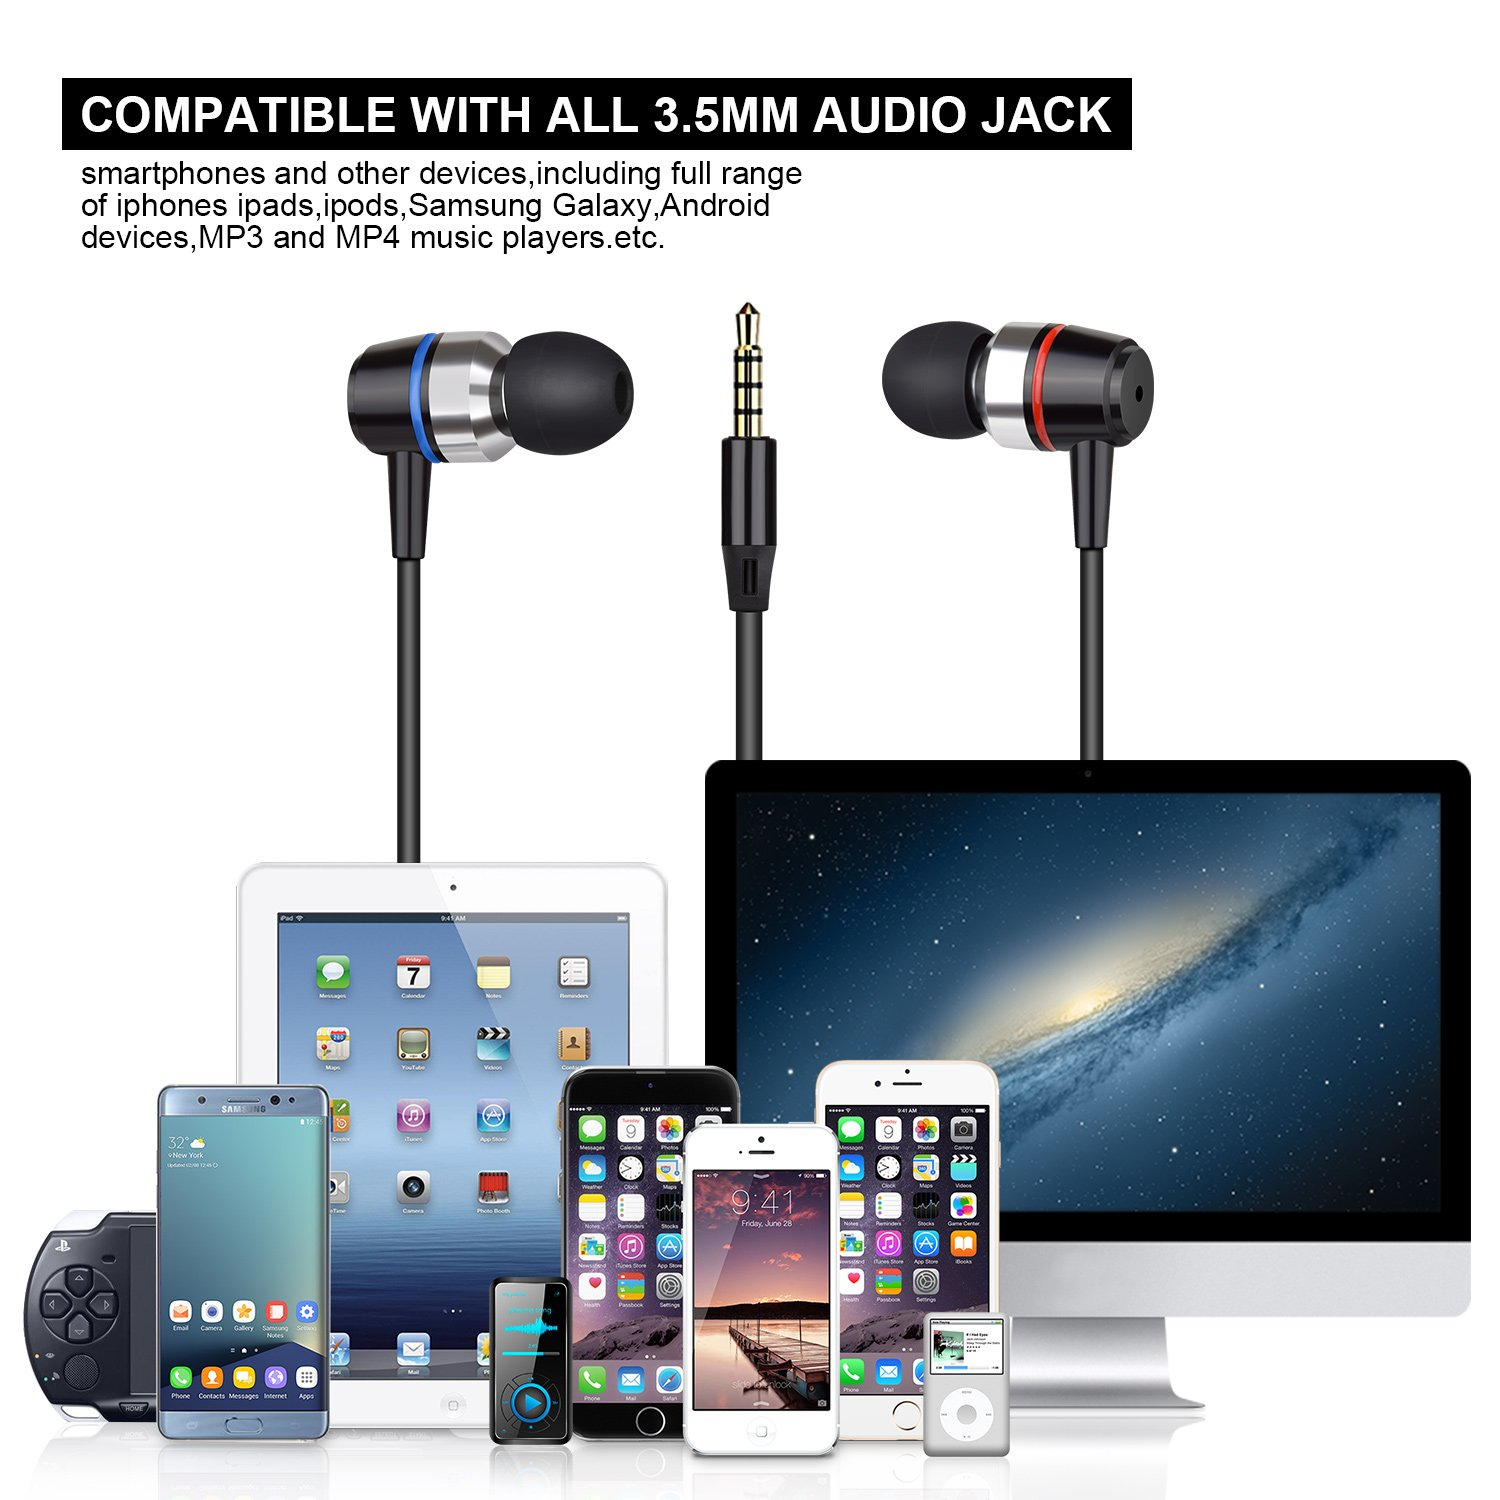 Earbuds Stereo Earphones In-Ear Headphones Earbuds with Microphone Mic and Volume Control Noise Isolating Wired Ear buds For iPhone Android Phone iPad Tablet Laptop(Black) by Gsebr (Image #5)